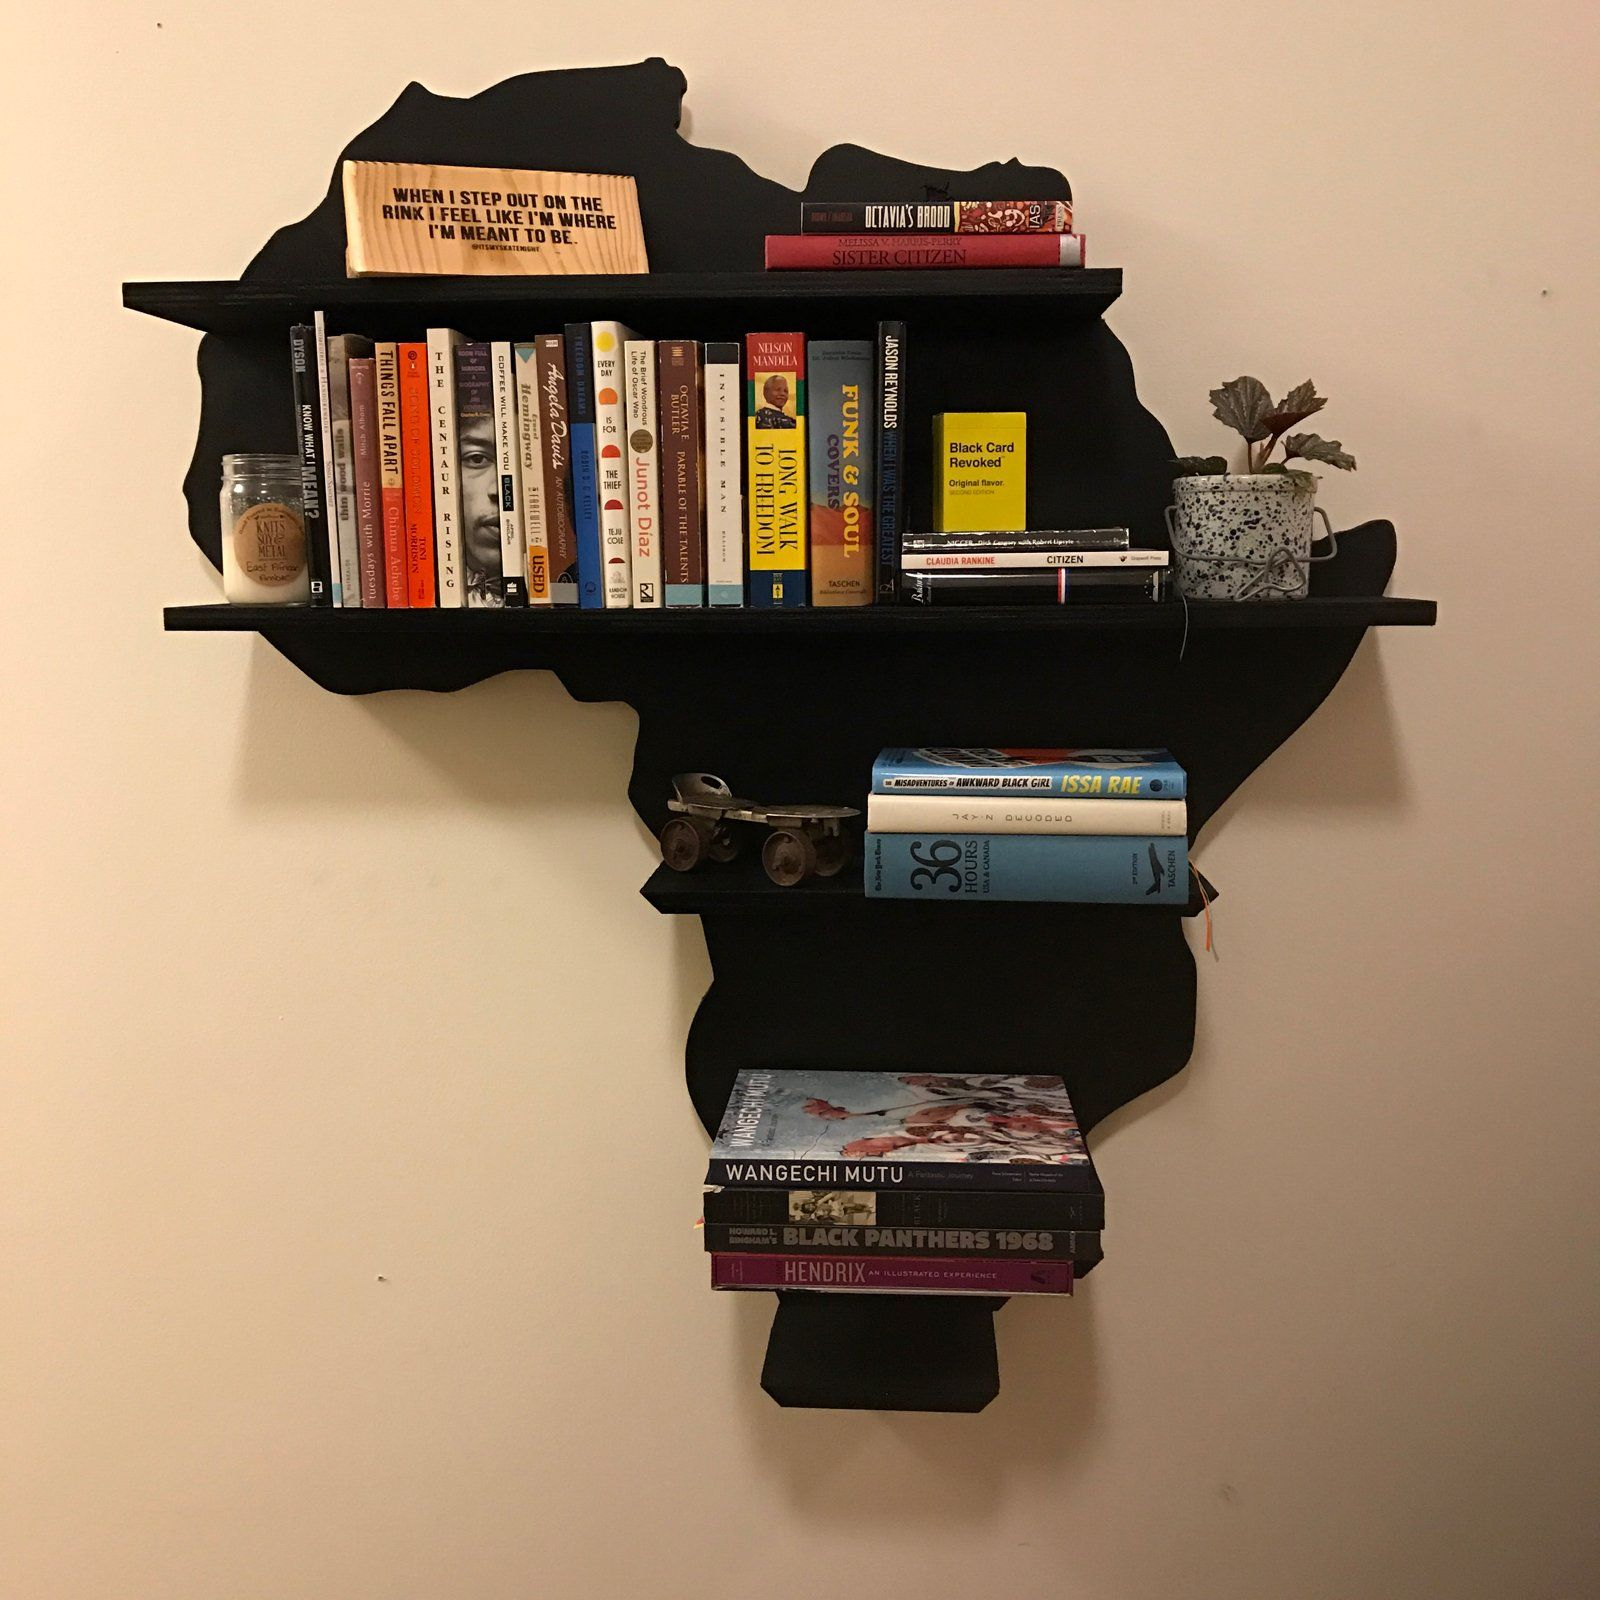 Jazz Up Your Home Or Office With This Unique Book Shelf